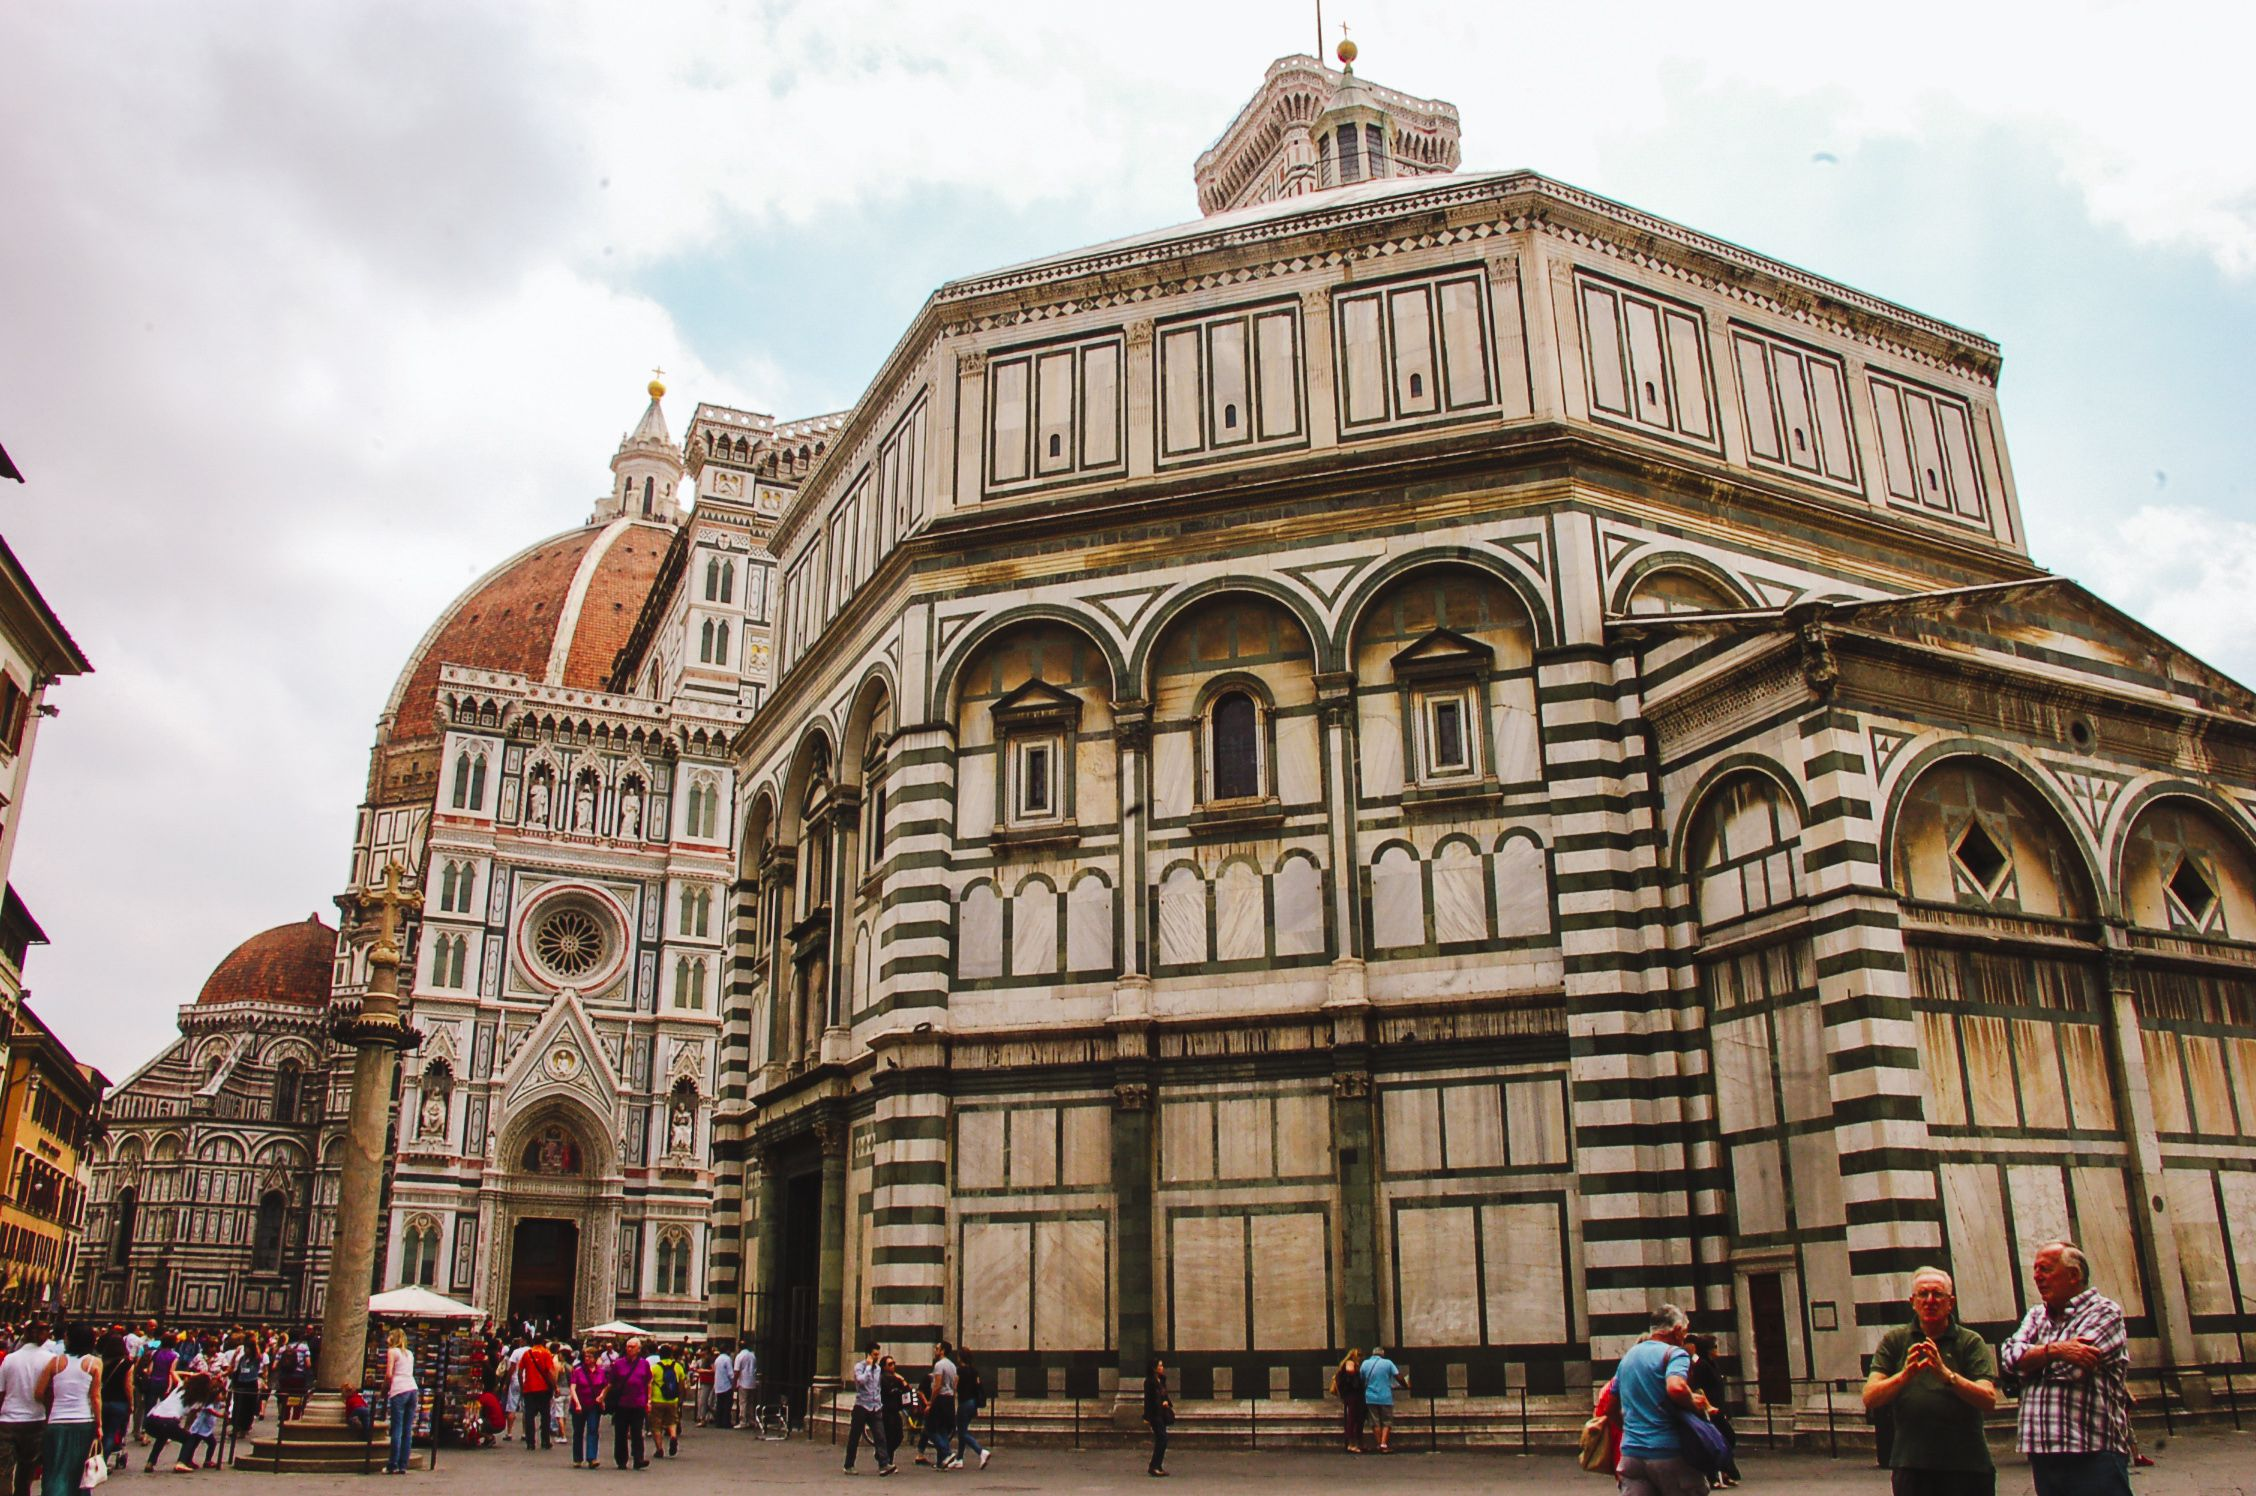 A shot of the Duomo in Florence